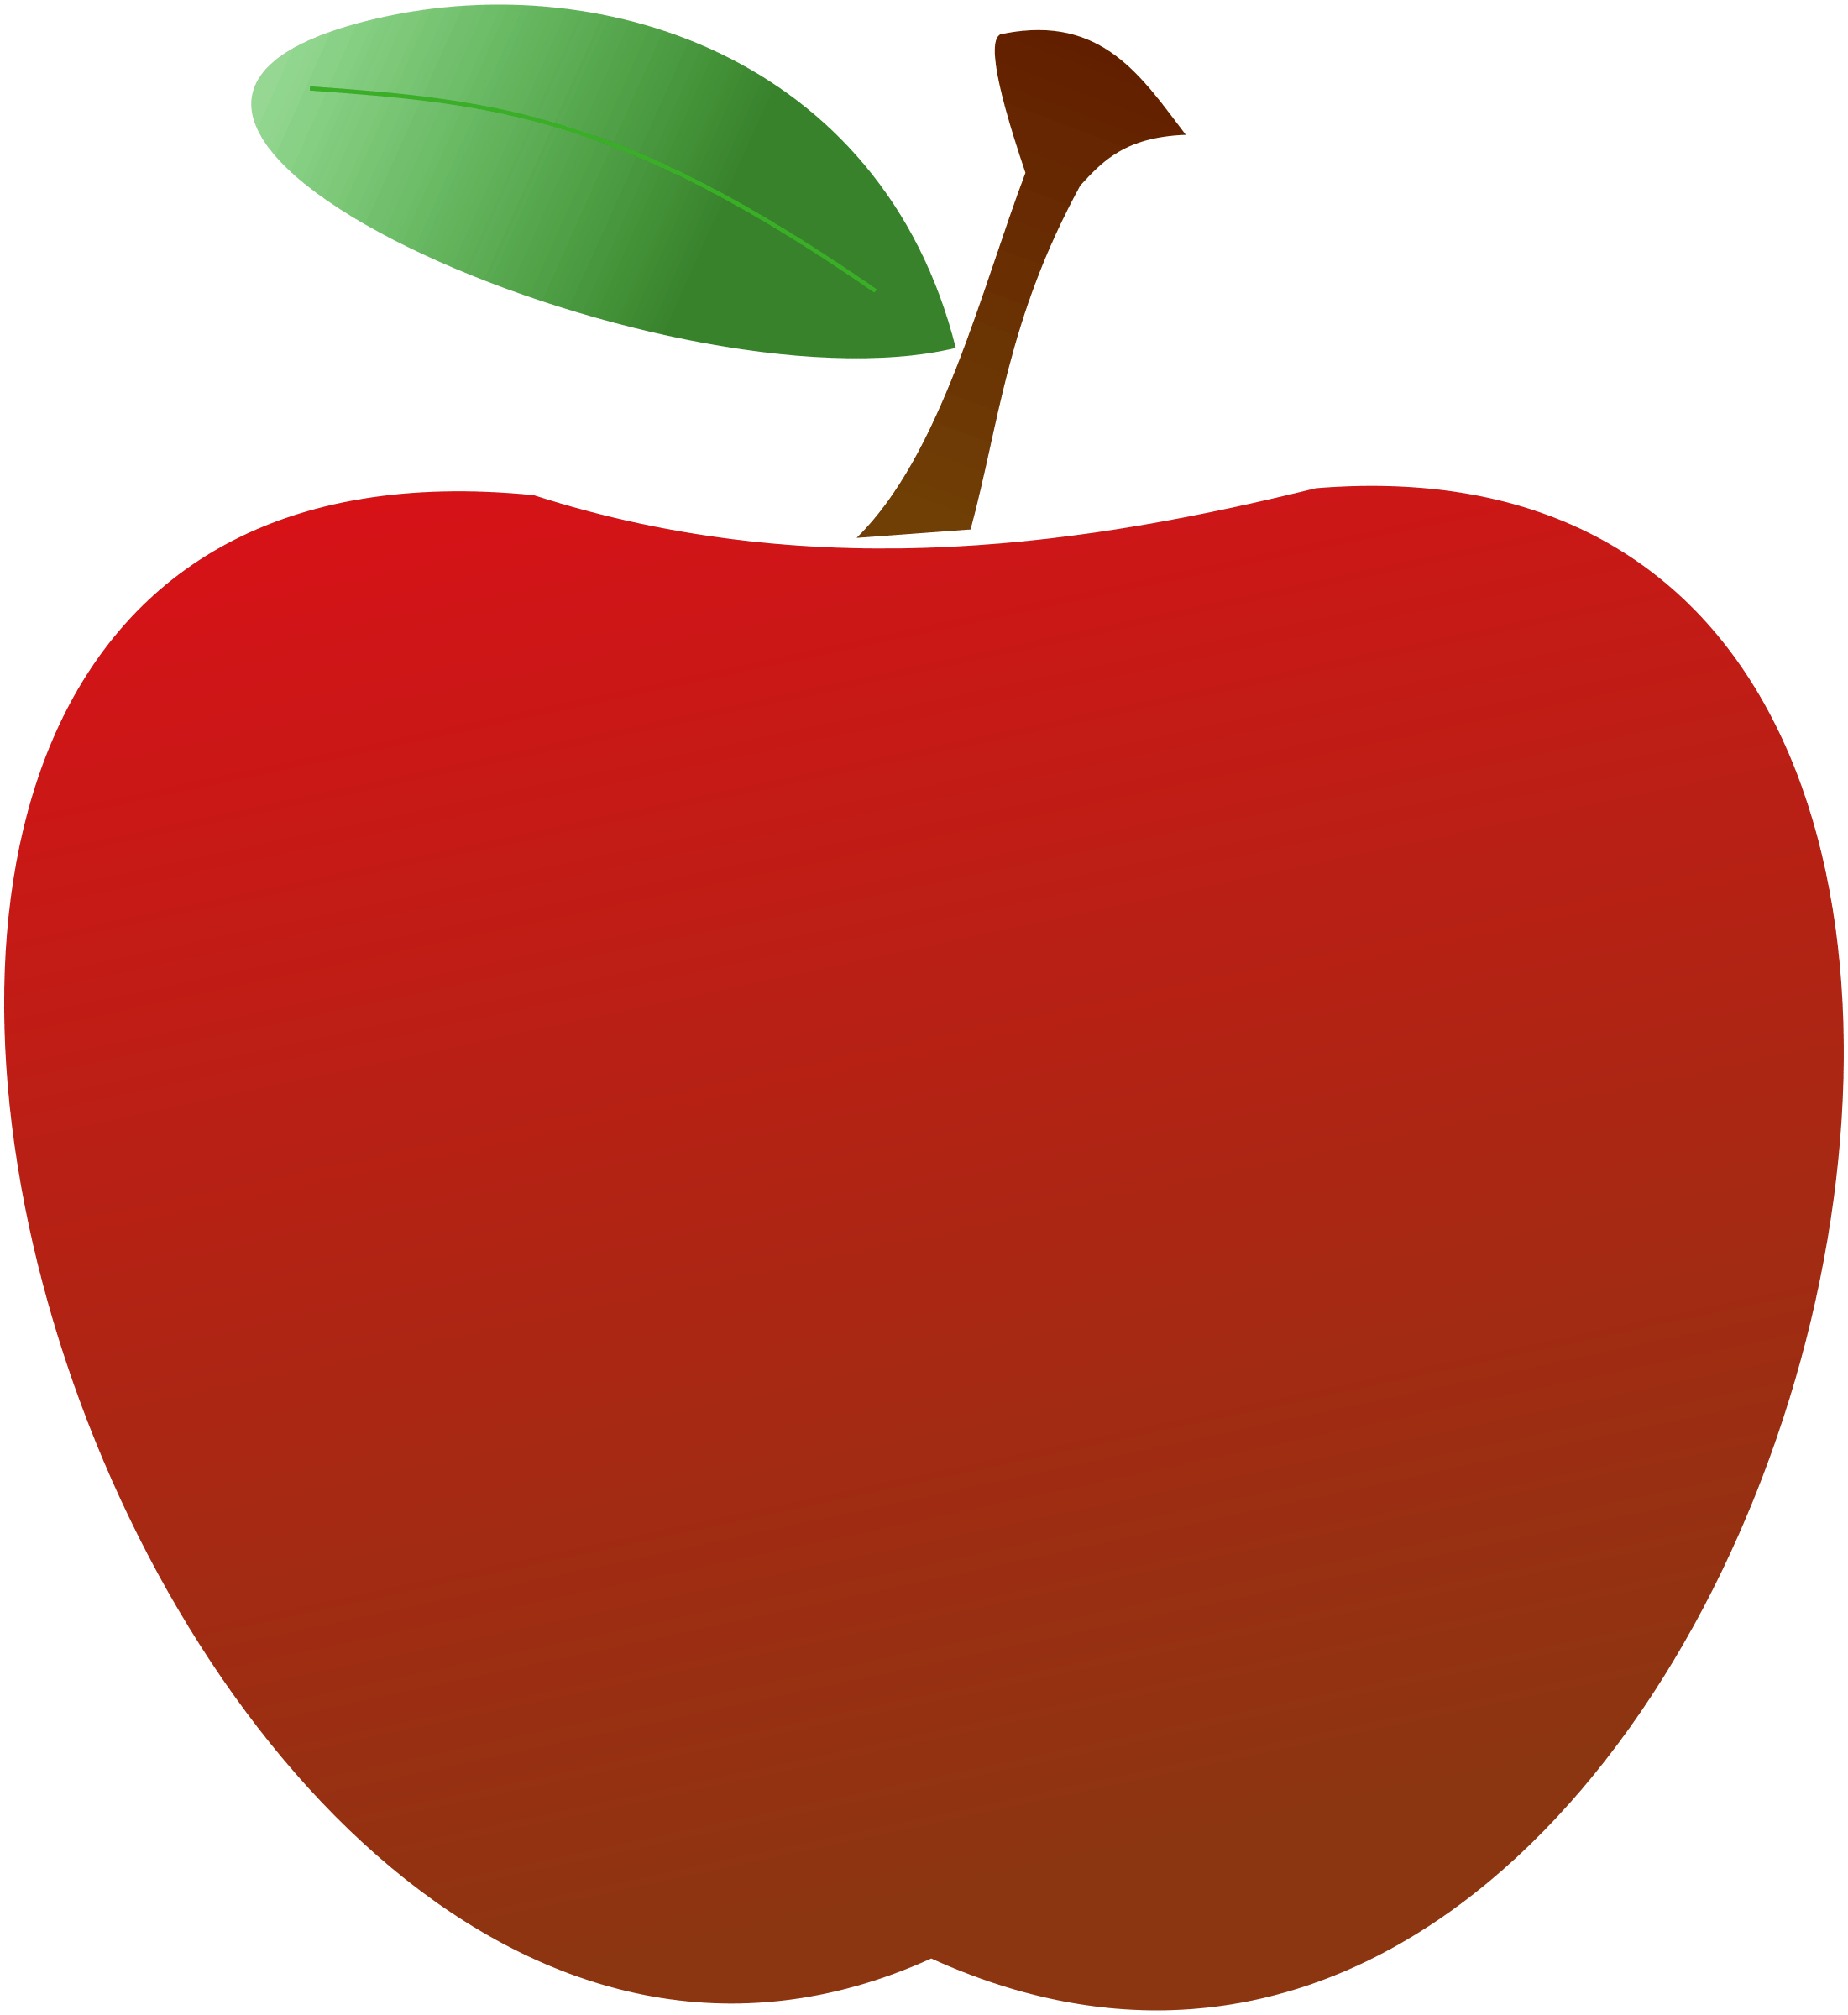 Worm in apple clipart vector Apple House Cliparts - Cliparts Zone vector